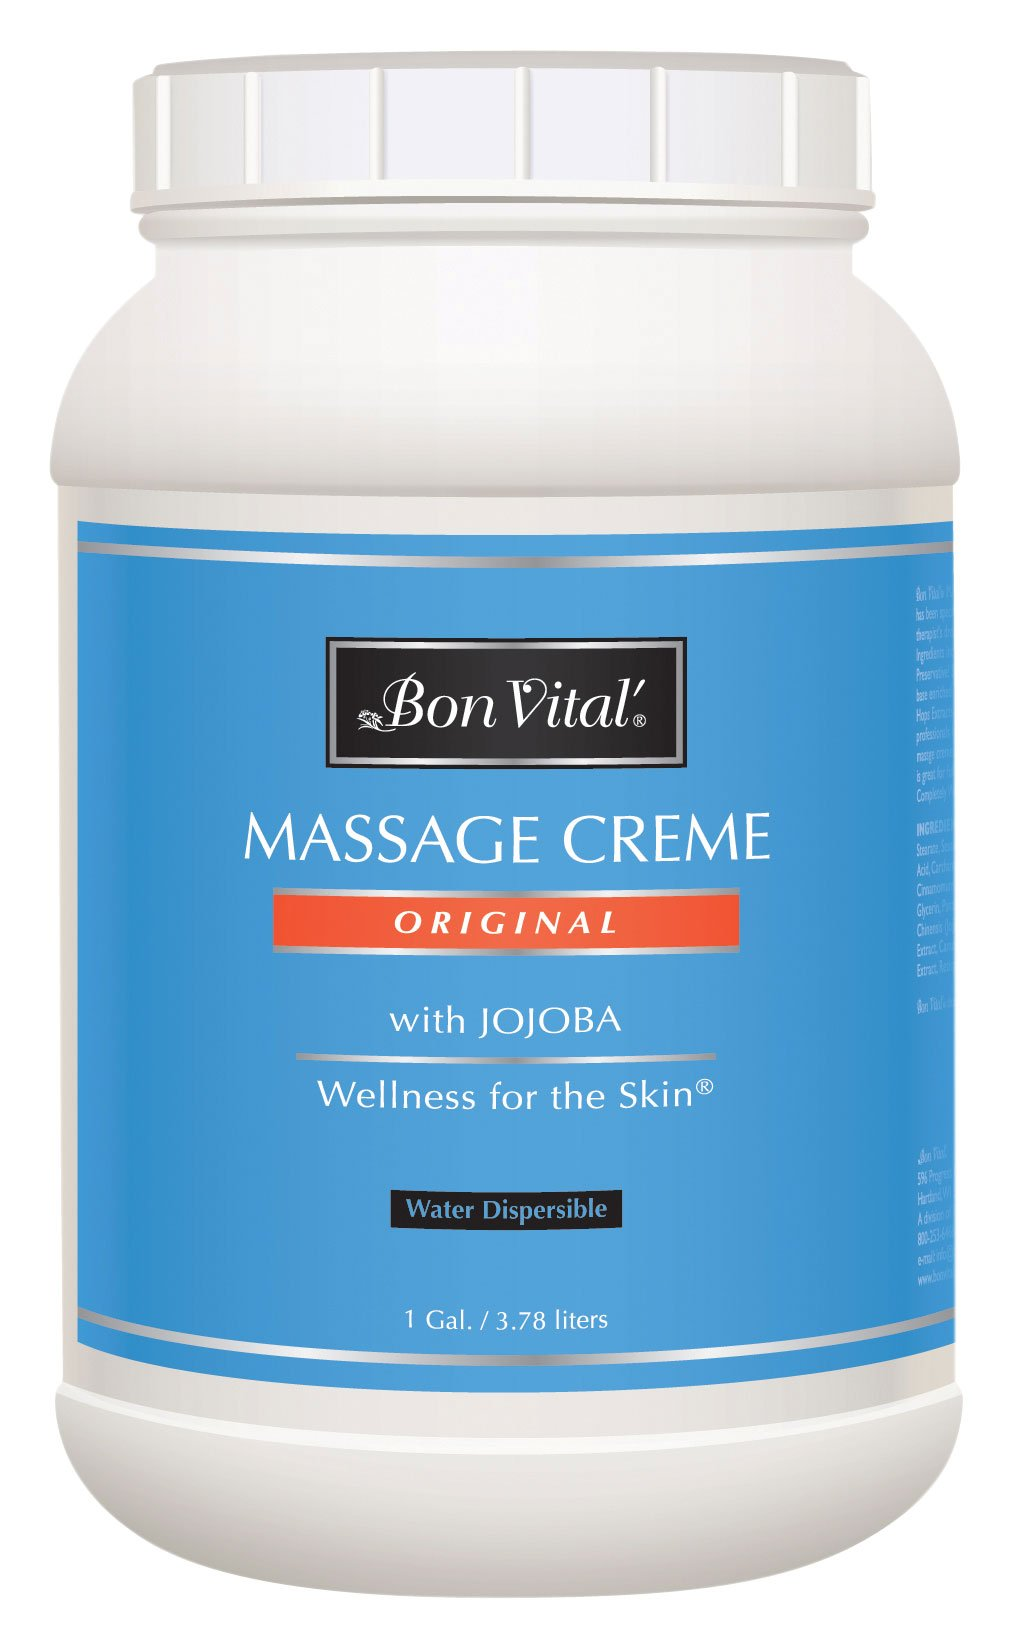 Bon Vital' Original Massage Crème for a Versatile Massage Foundation to Relax Sore Muscles & Repair Dry Skin, Revitalize Skin and Lock in Moisture, Allows for Muscle Manipulation, 1 Gallon Jar by Bon Vital